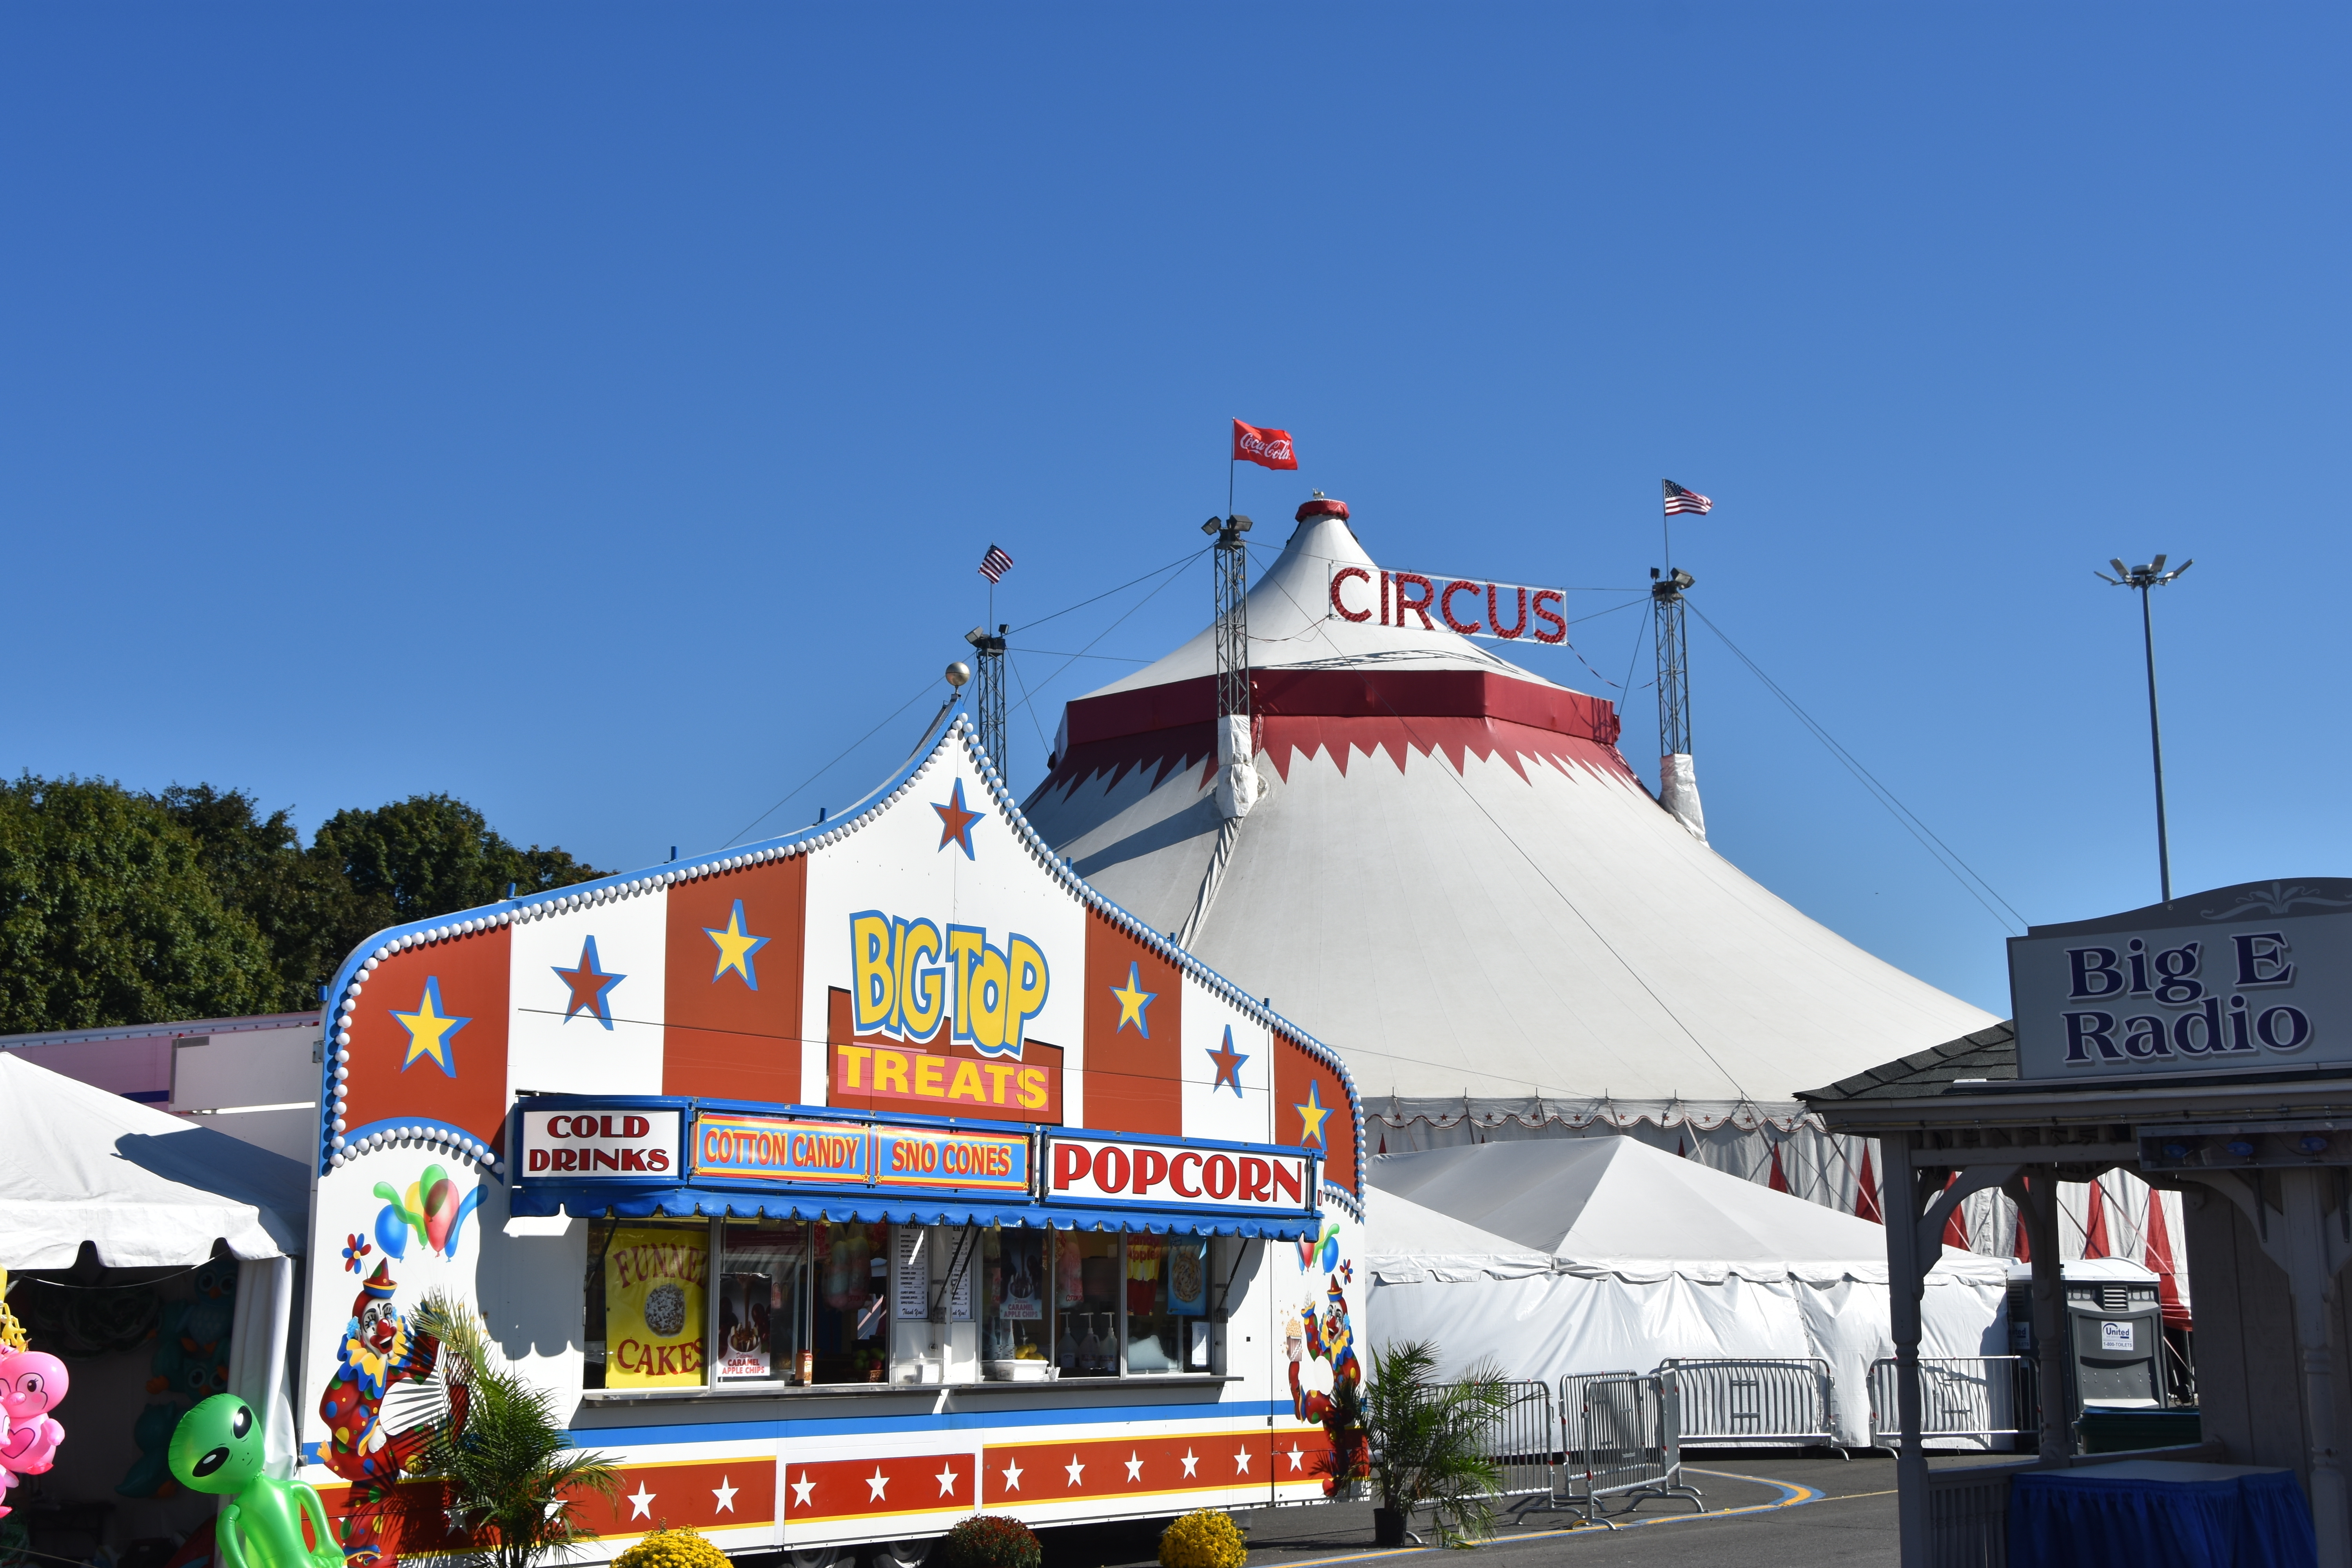 2019 Circus Fans Association of America Convention - Circus